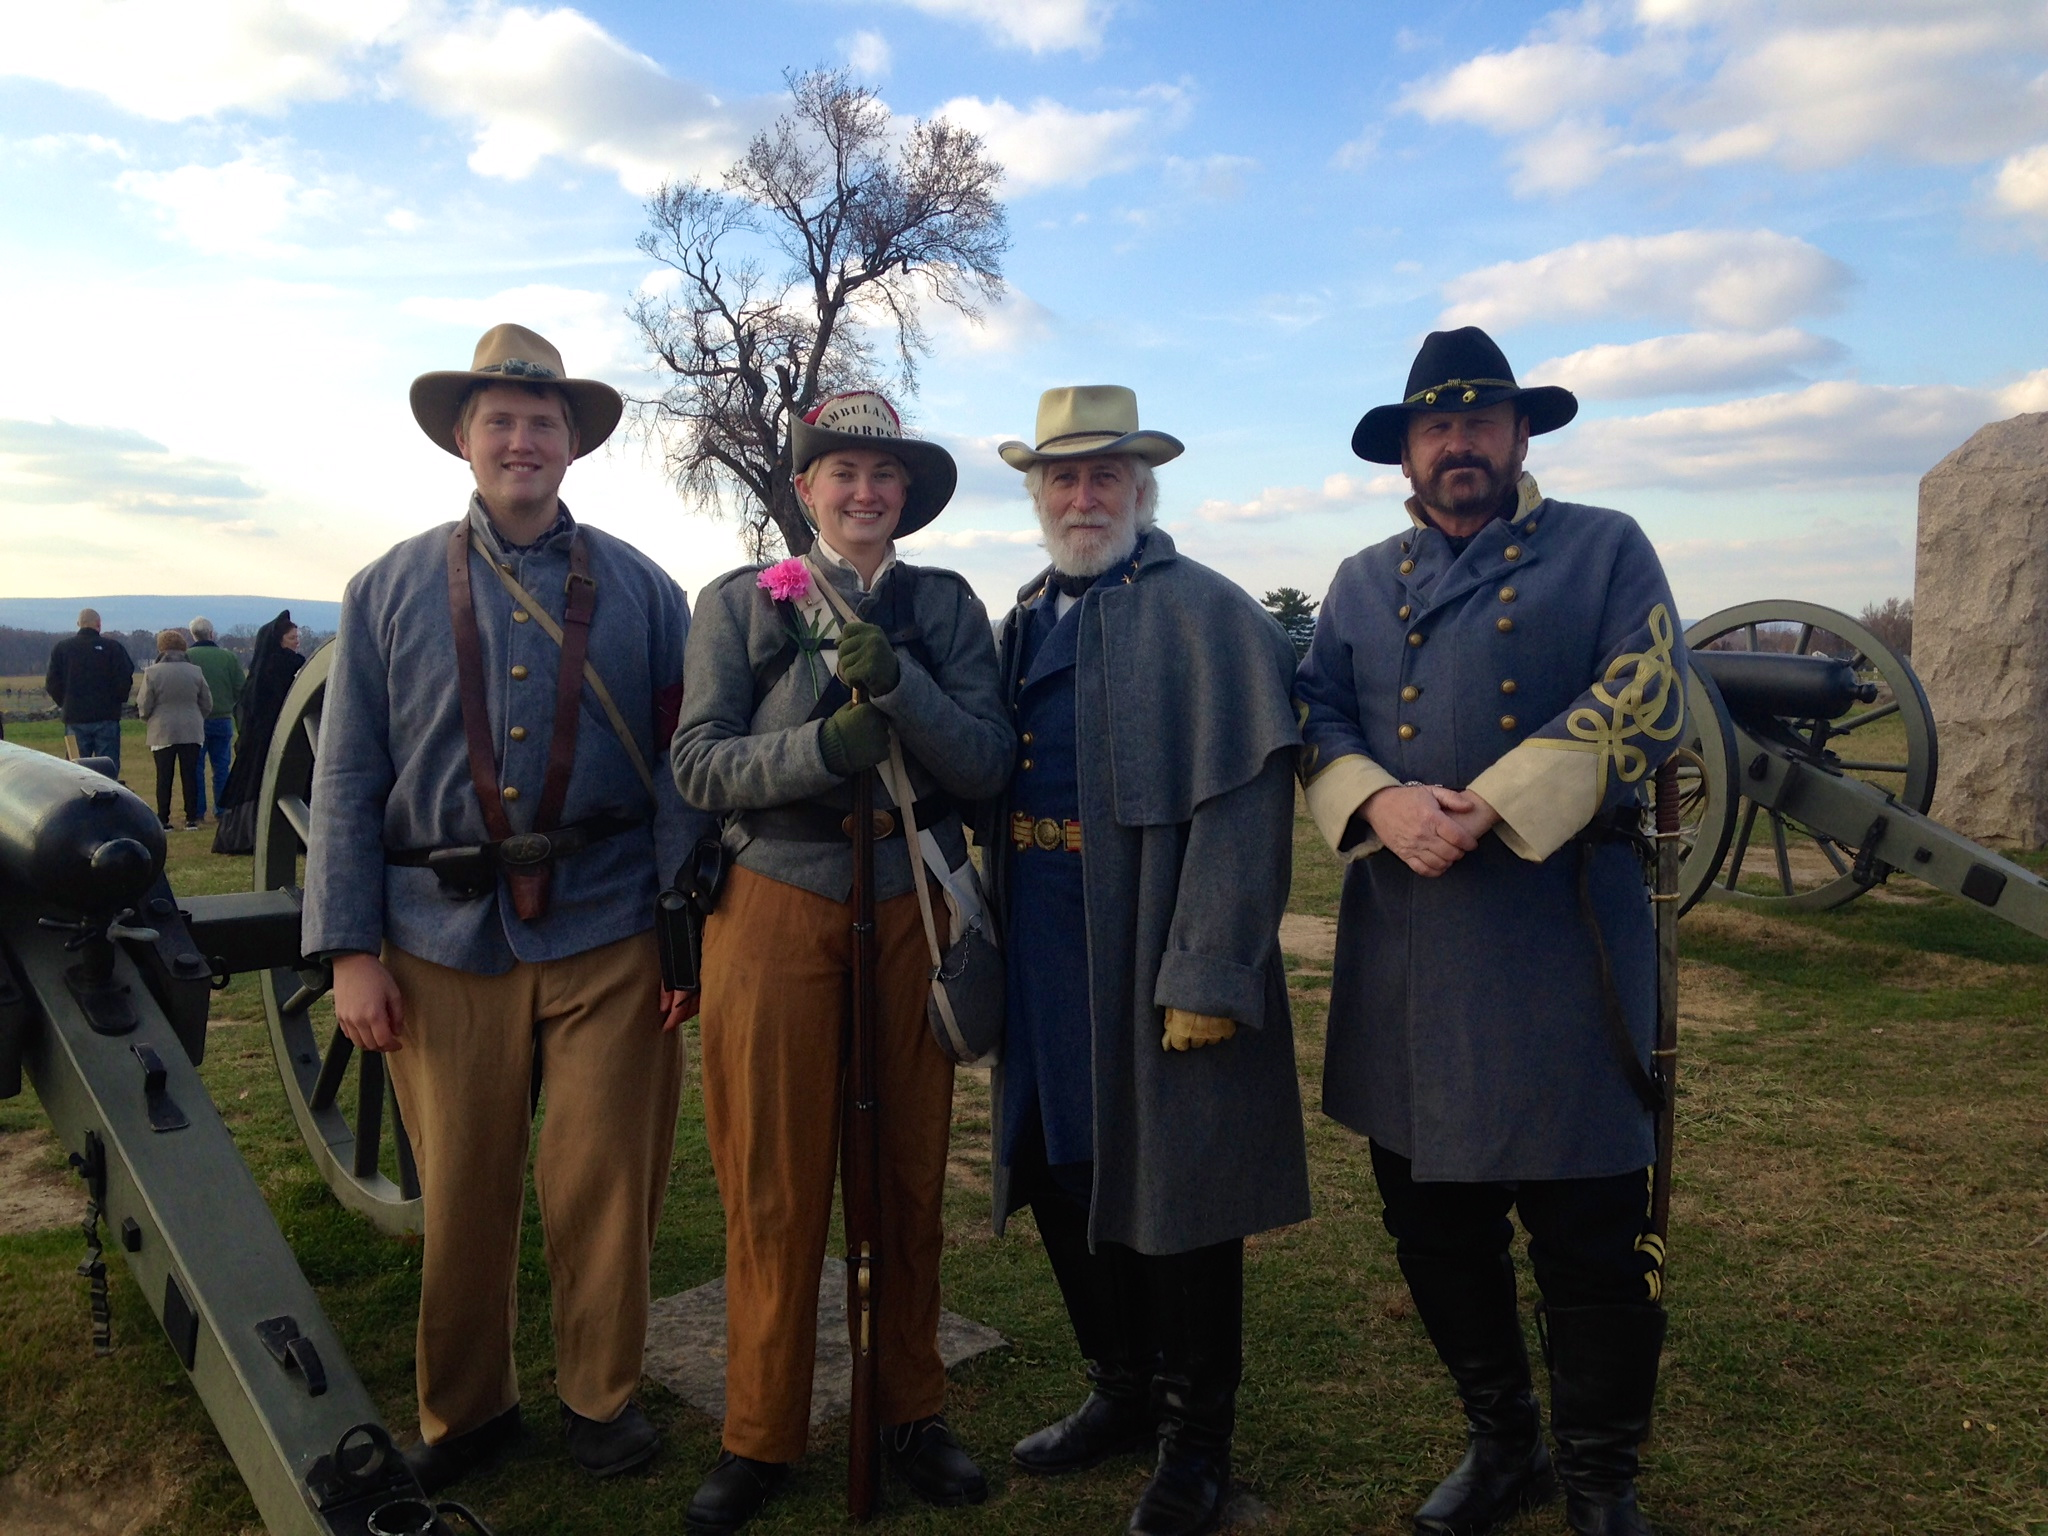 Reenactors at Gettysburg Remembrance Day